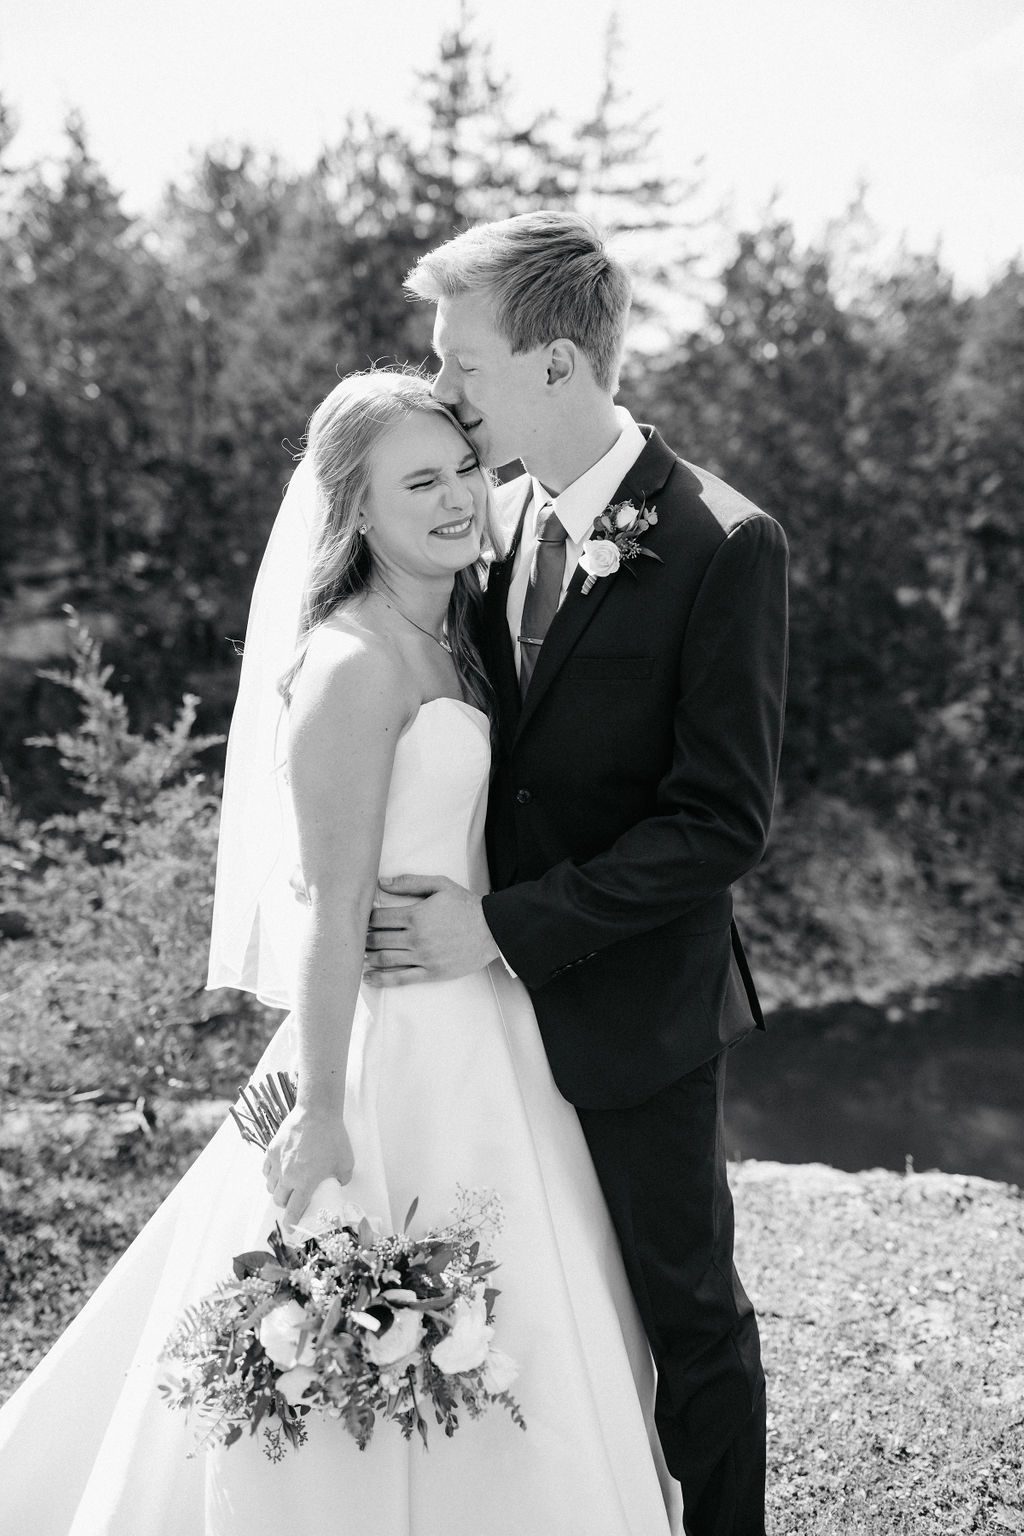 Black and White Wedding Photo: Beautiful Graystone Quarry Wedding captured by John Myers Photography & Videography